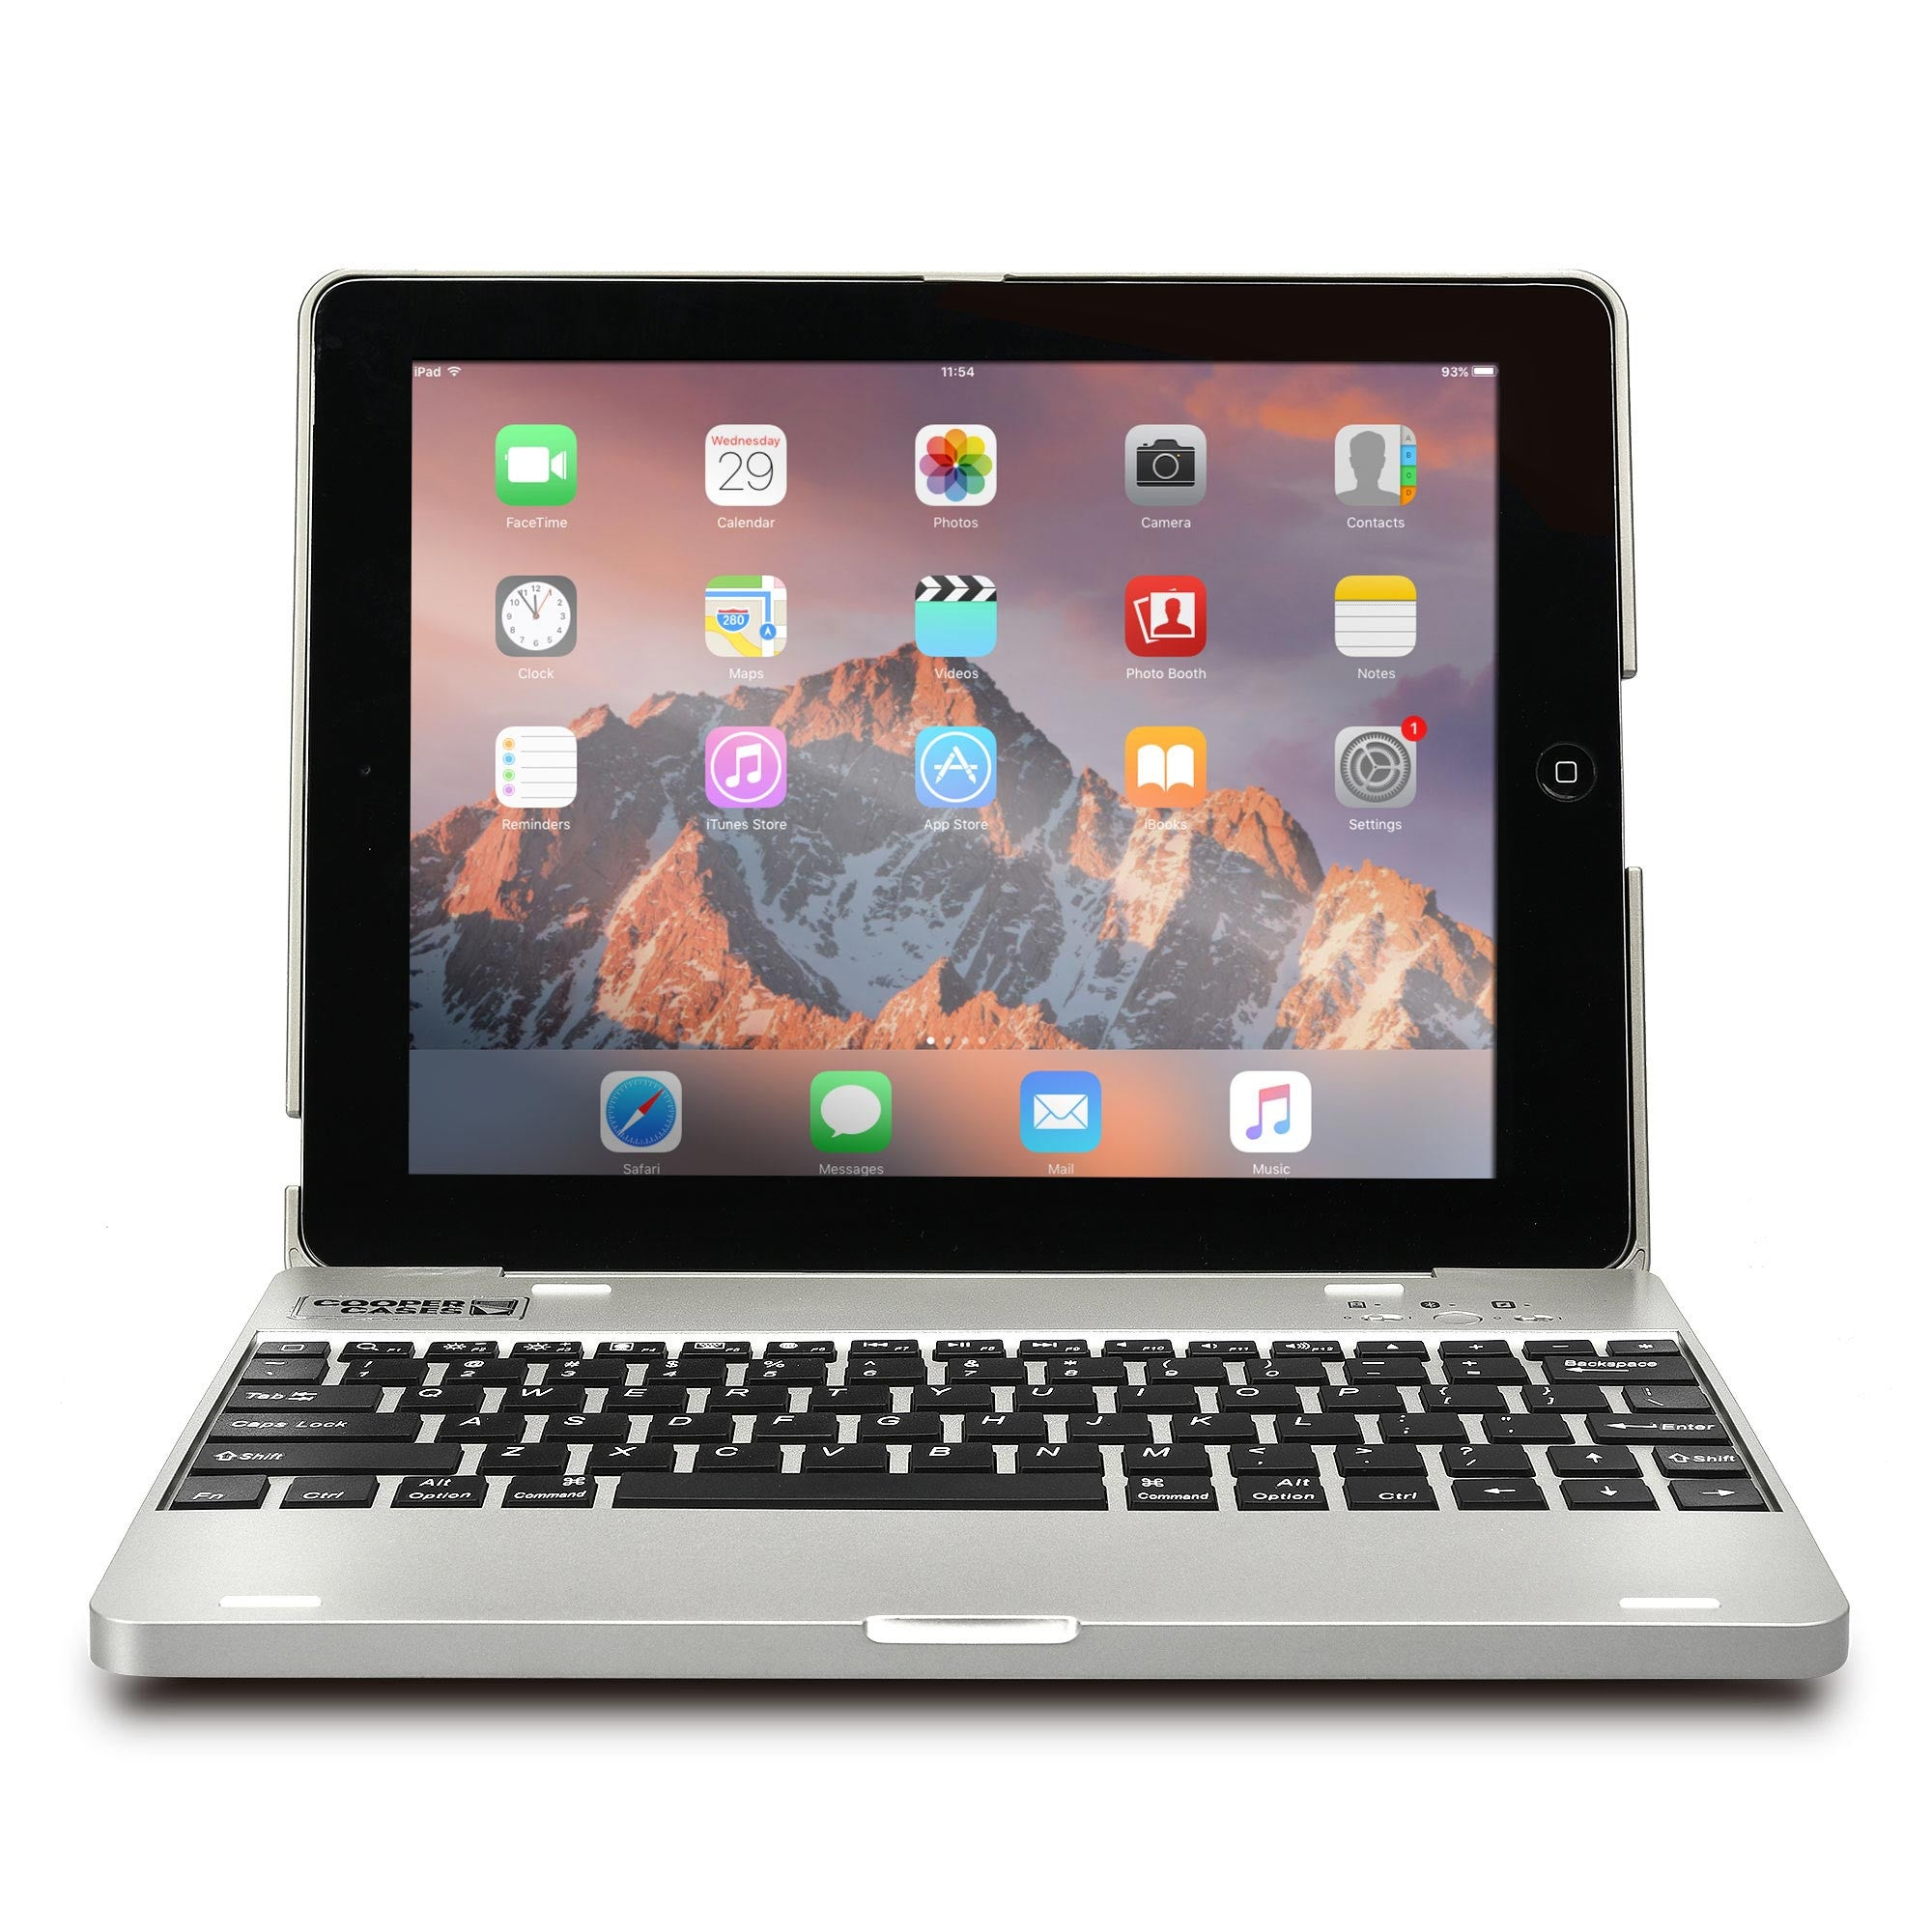 cooper kai skel clamshell keyboard \u0026 powerbank for ipad 2 3 4cooper kai skel clamshell keyboard \u0026 powerbank for ipad 2 3 4 cooper cases